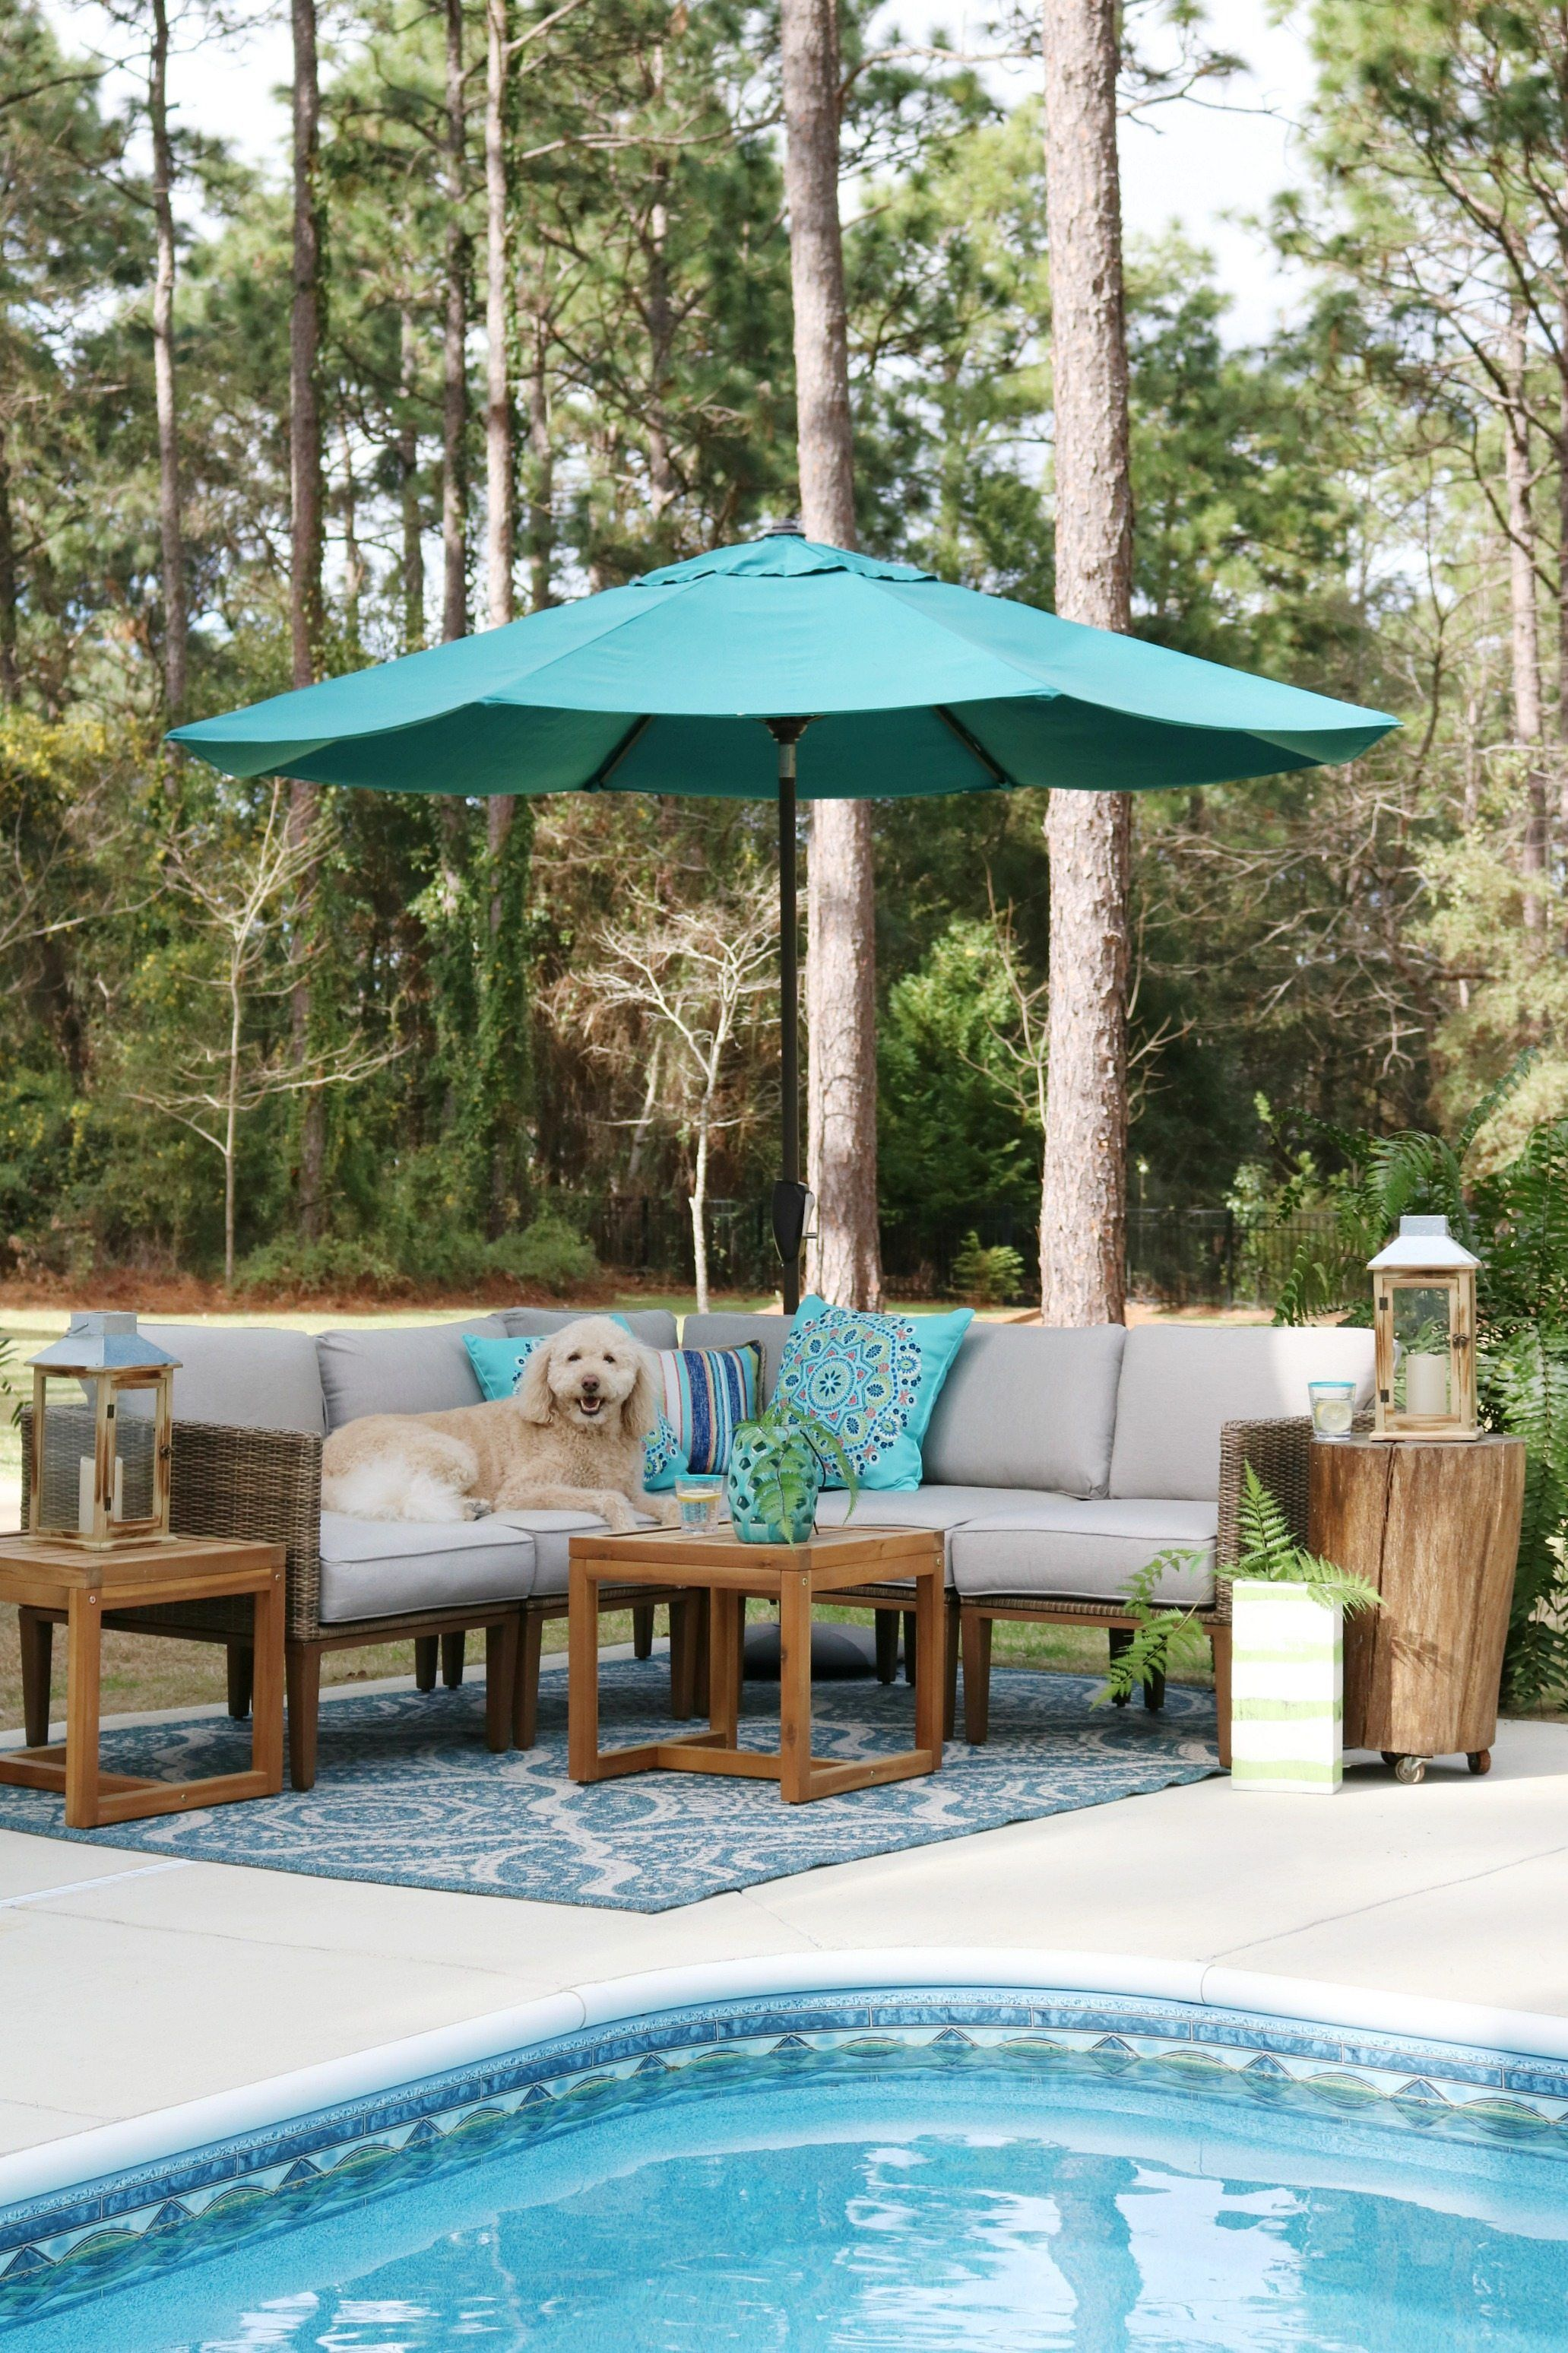 Poolside Labradoodle Murphy Patio Furniture From Better Homes Gardens At Love The Aqua Accents And Neutral Seating Mixed With Wood Tables